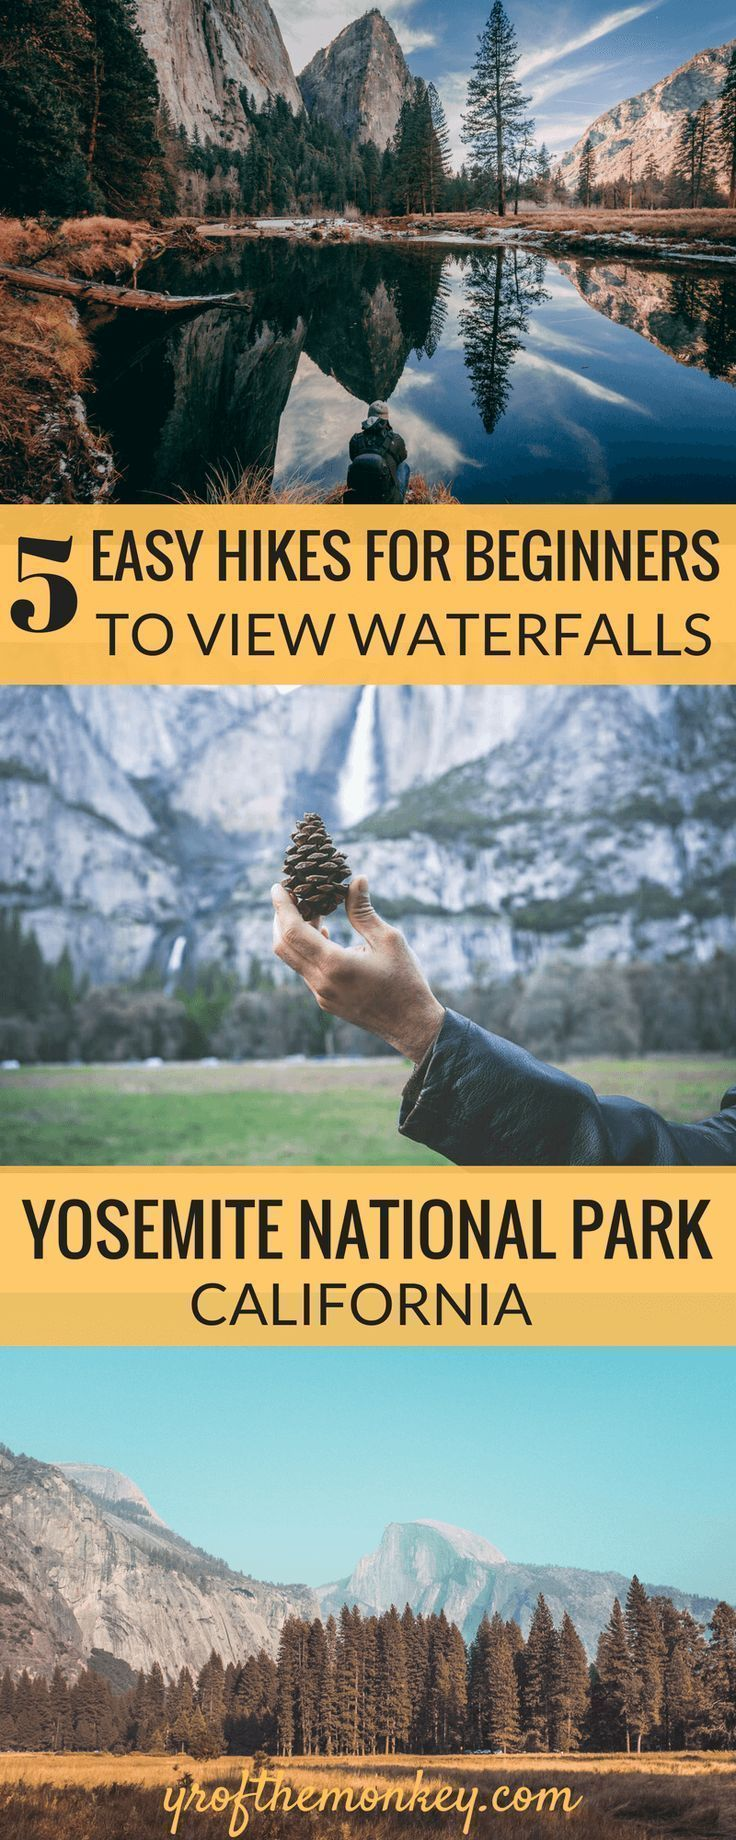 Easy yosemite hikes 5 day hikes for nonhikers to view